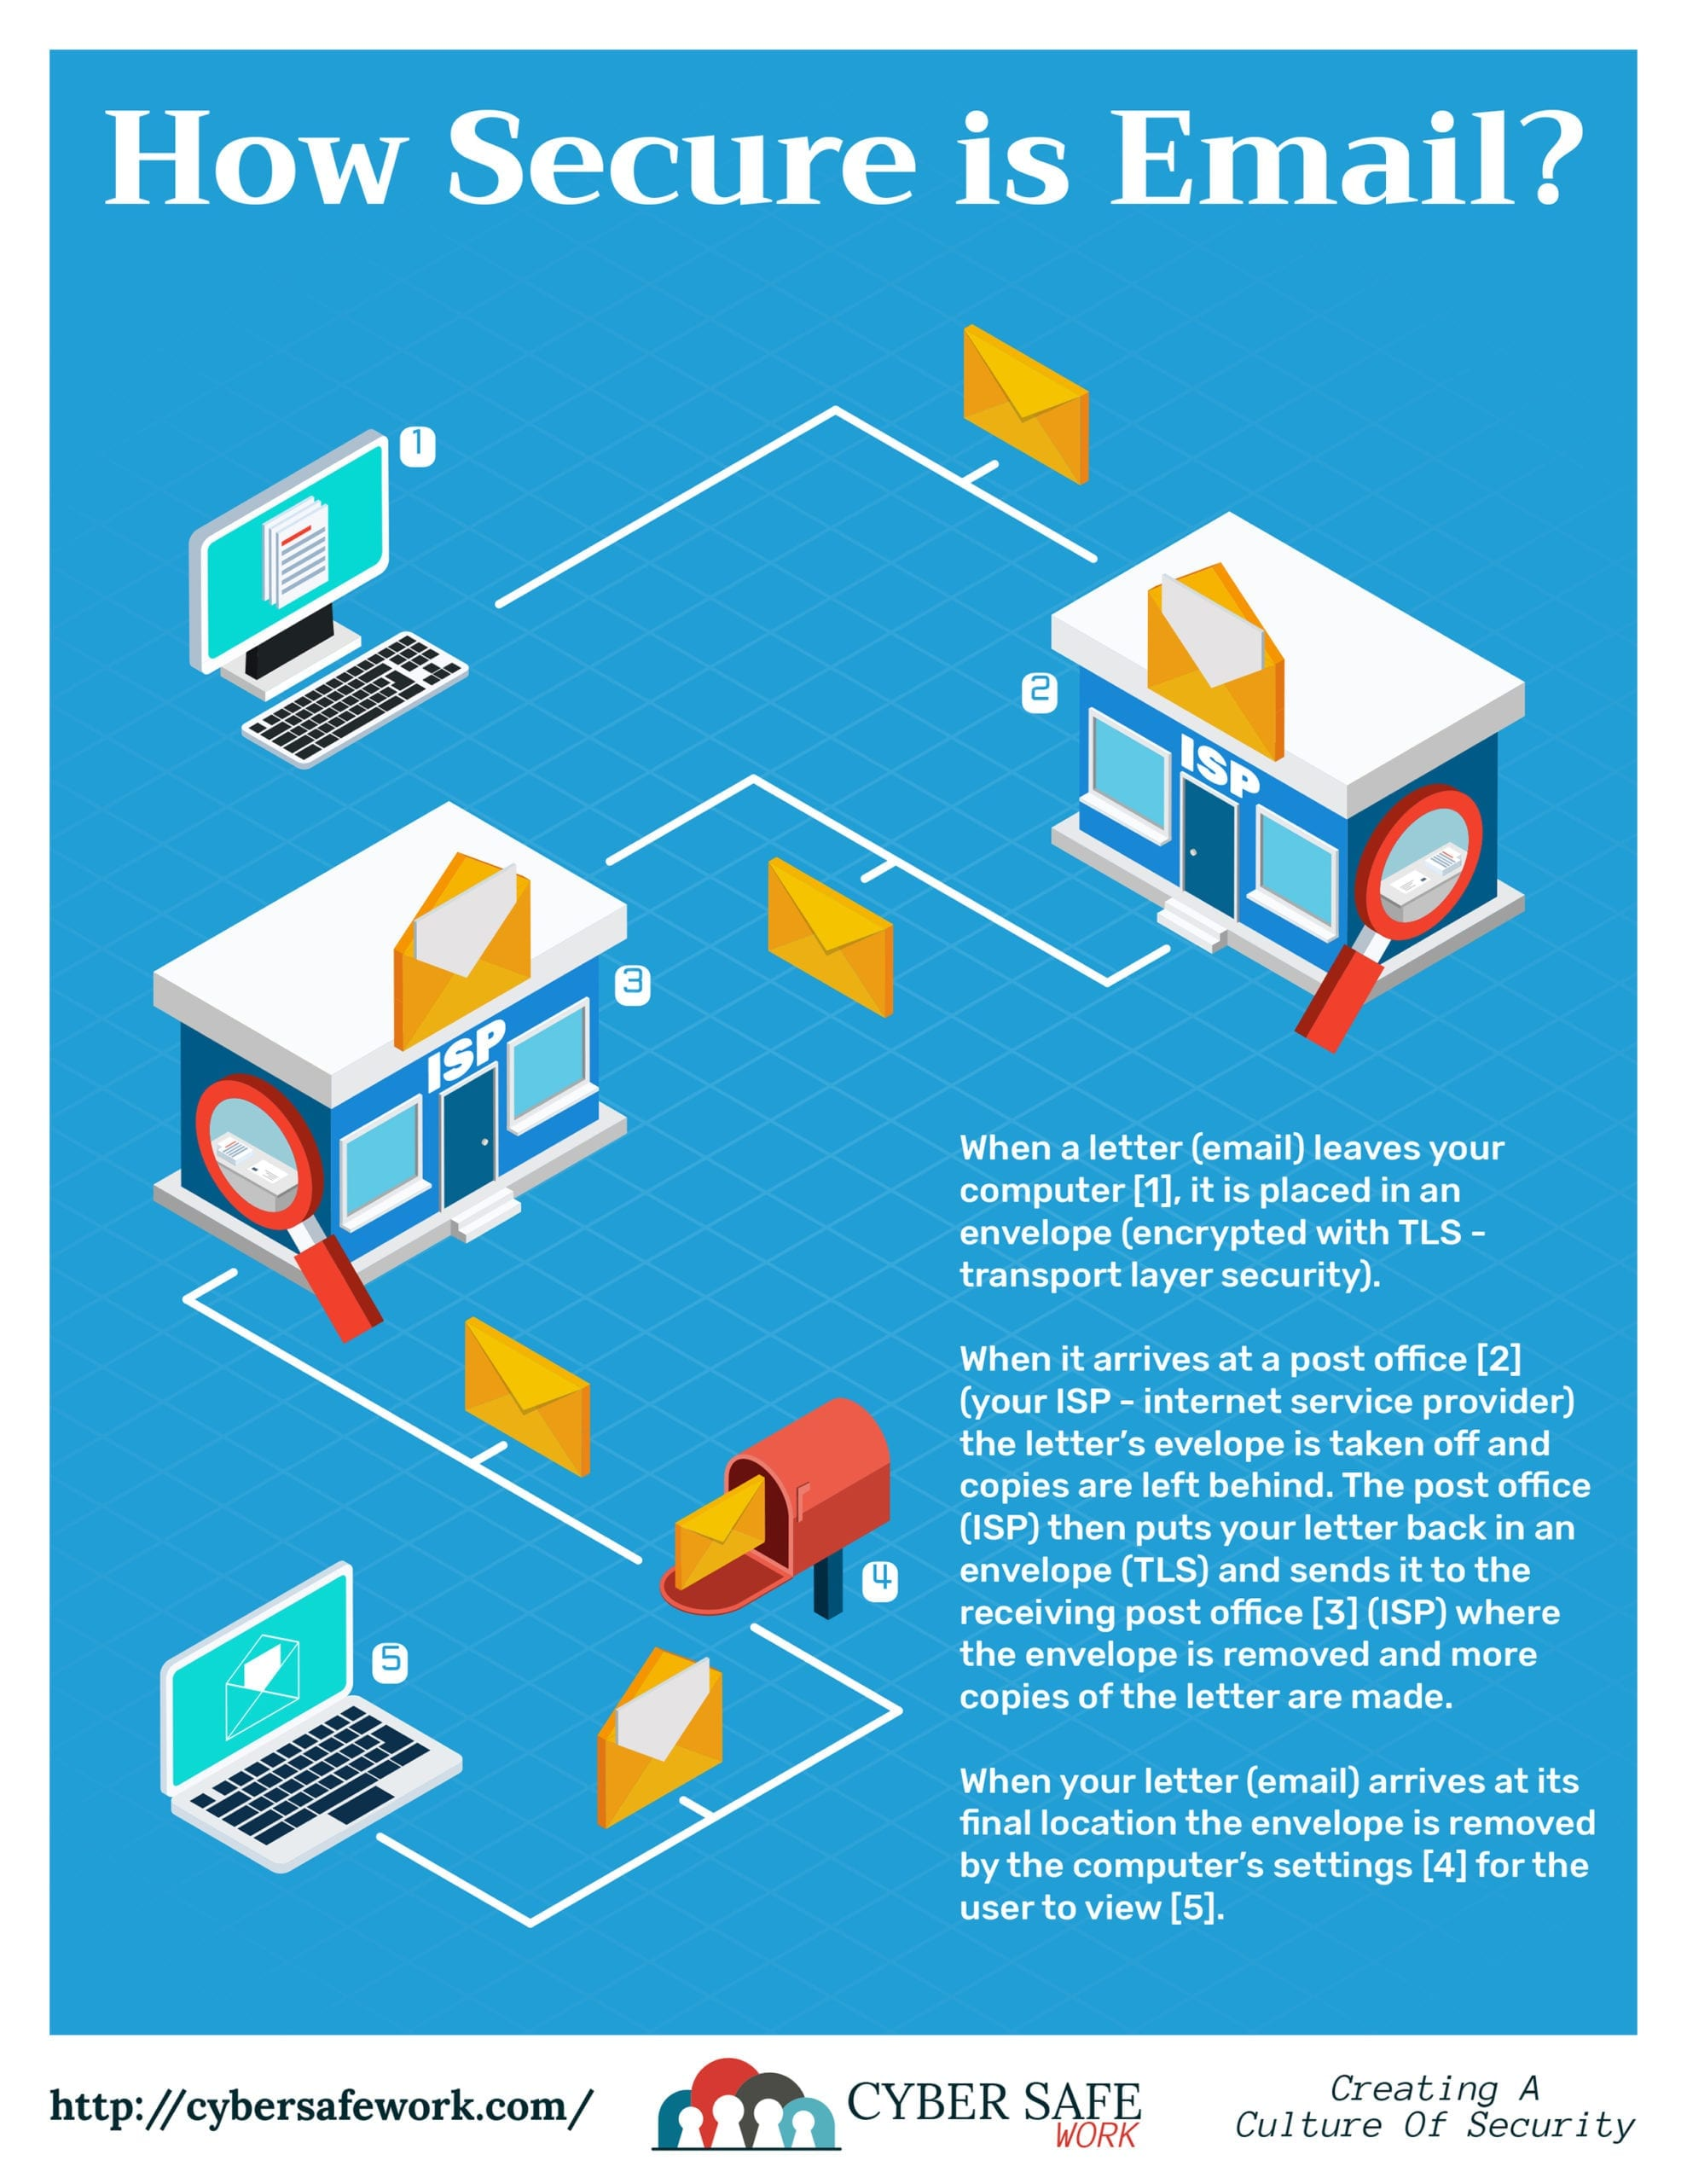 CyberSafe Work Oct 2018 Secure Email Poster